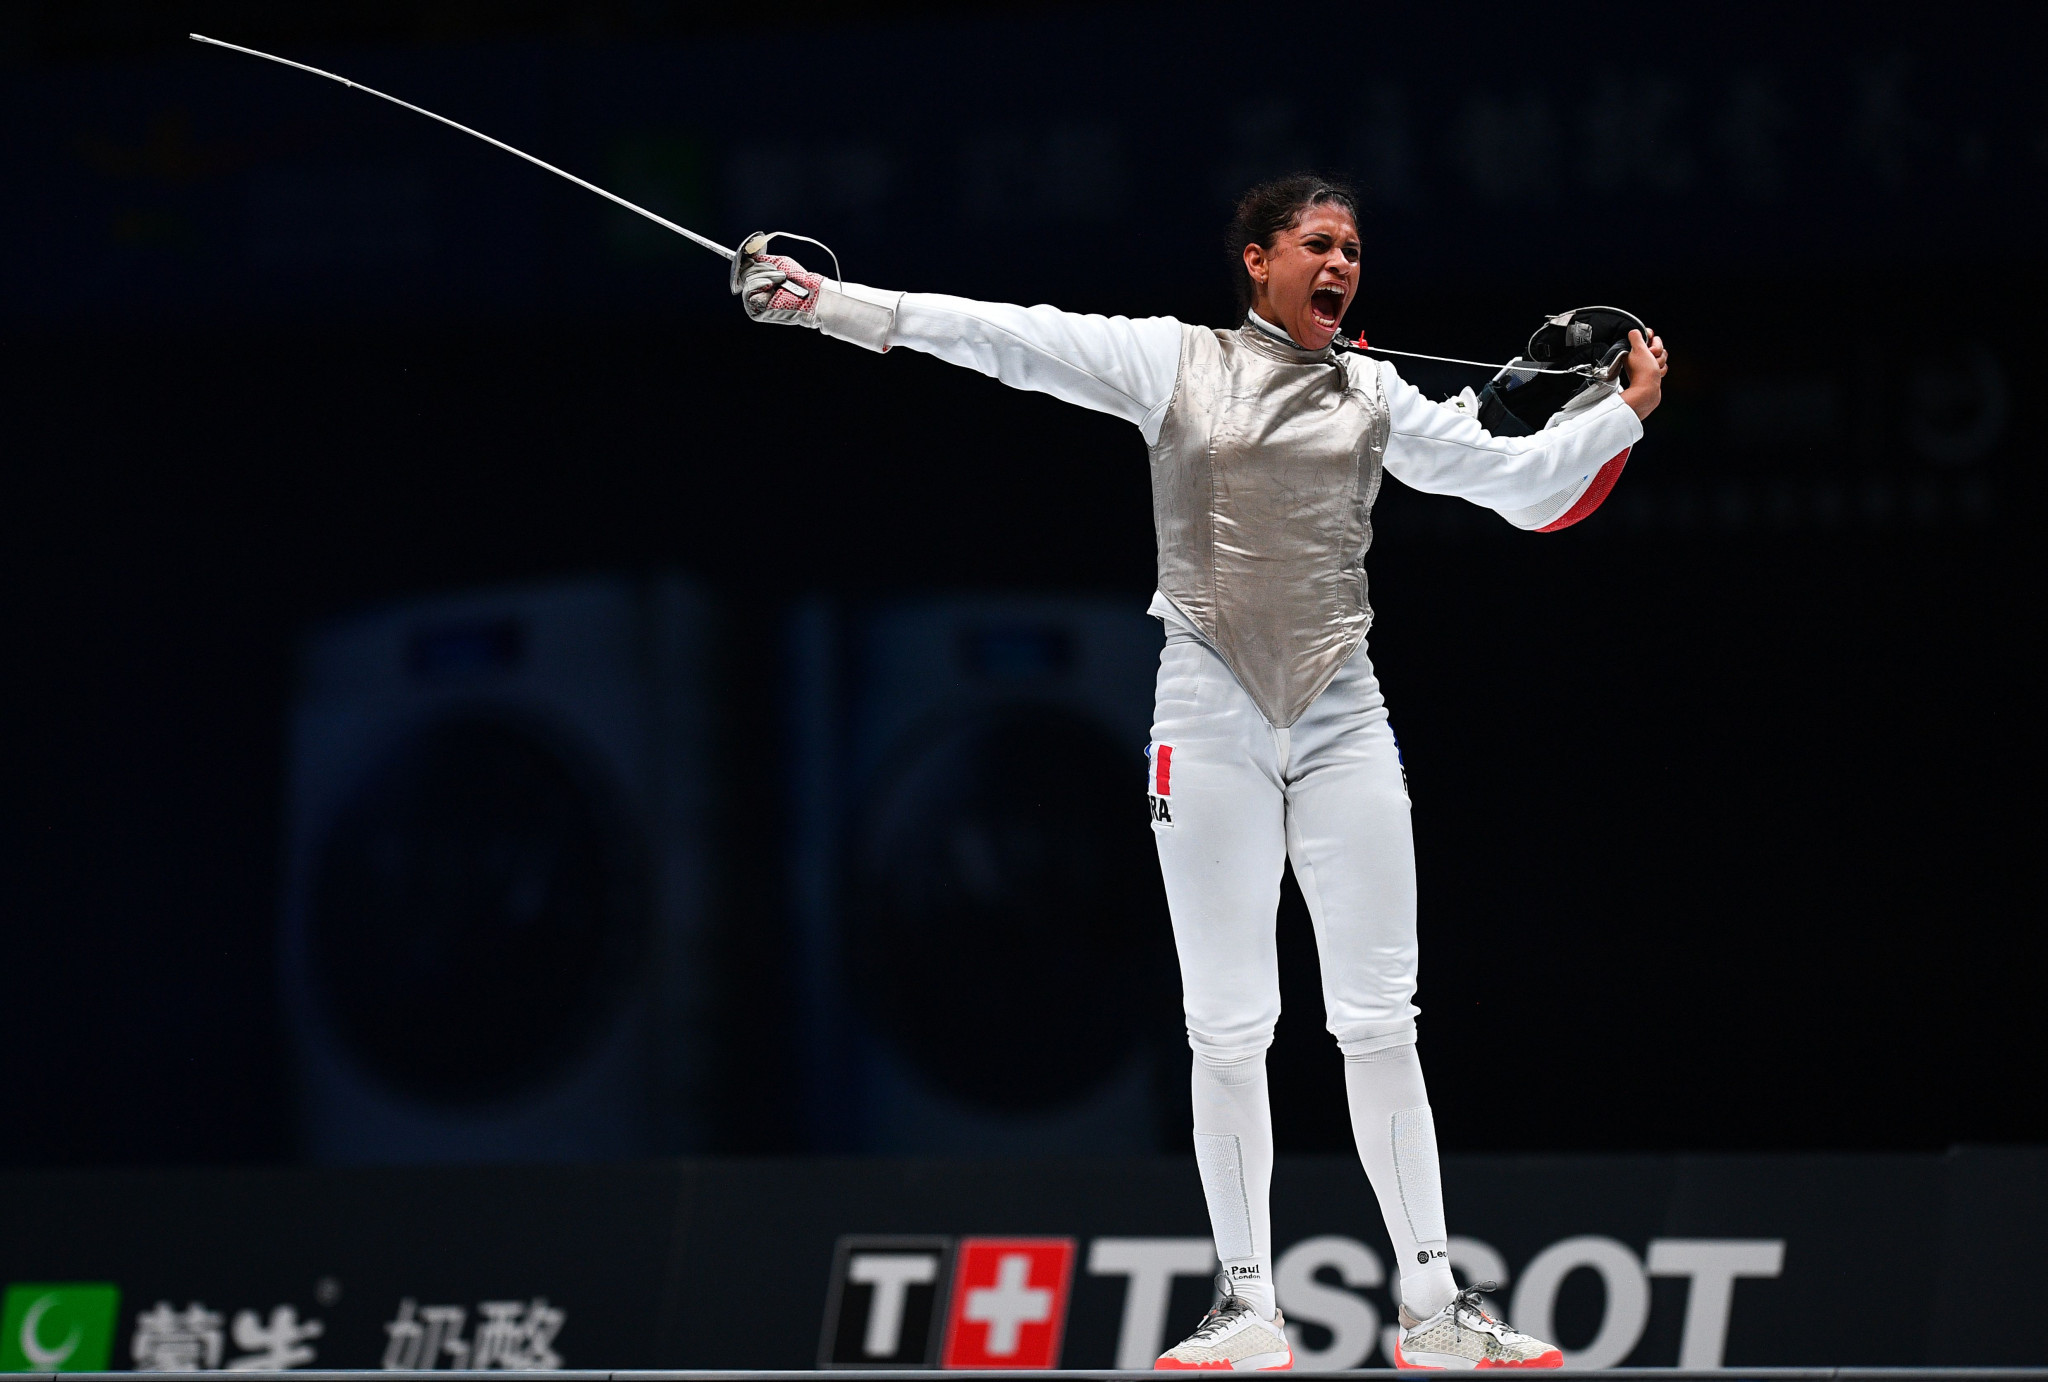 Fourth seeds France snatch women's team foil title at FIE World Cup in Katowice